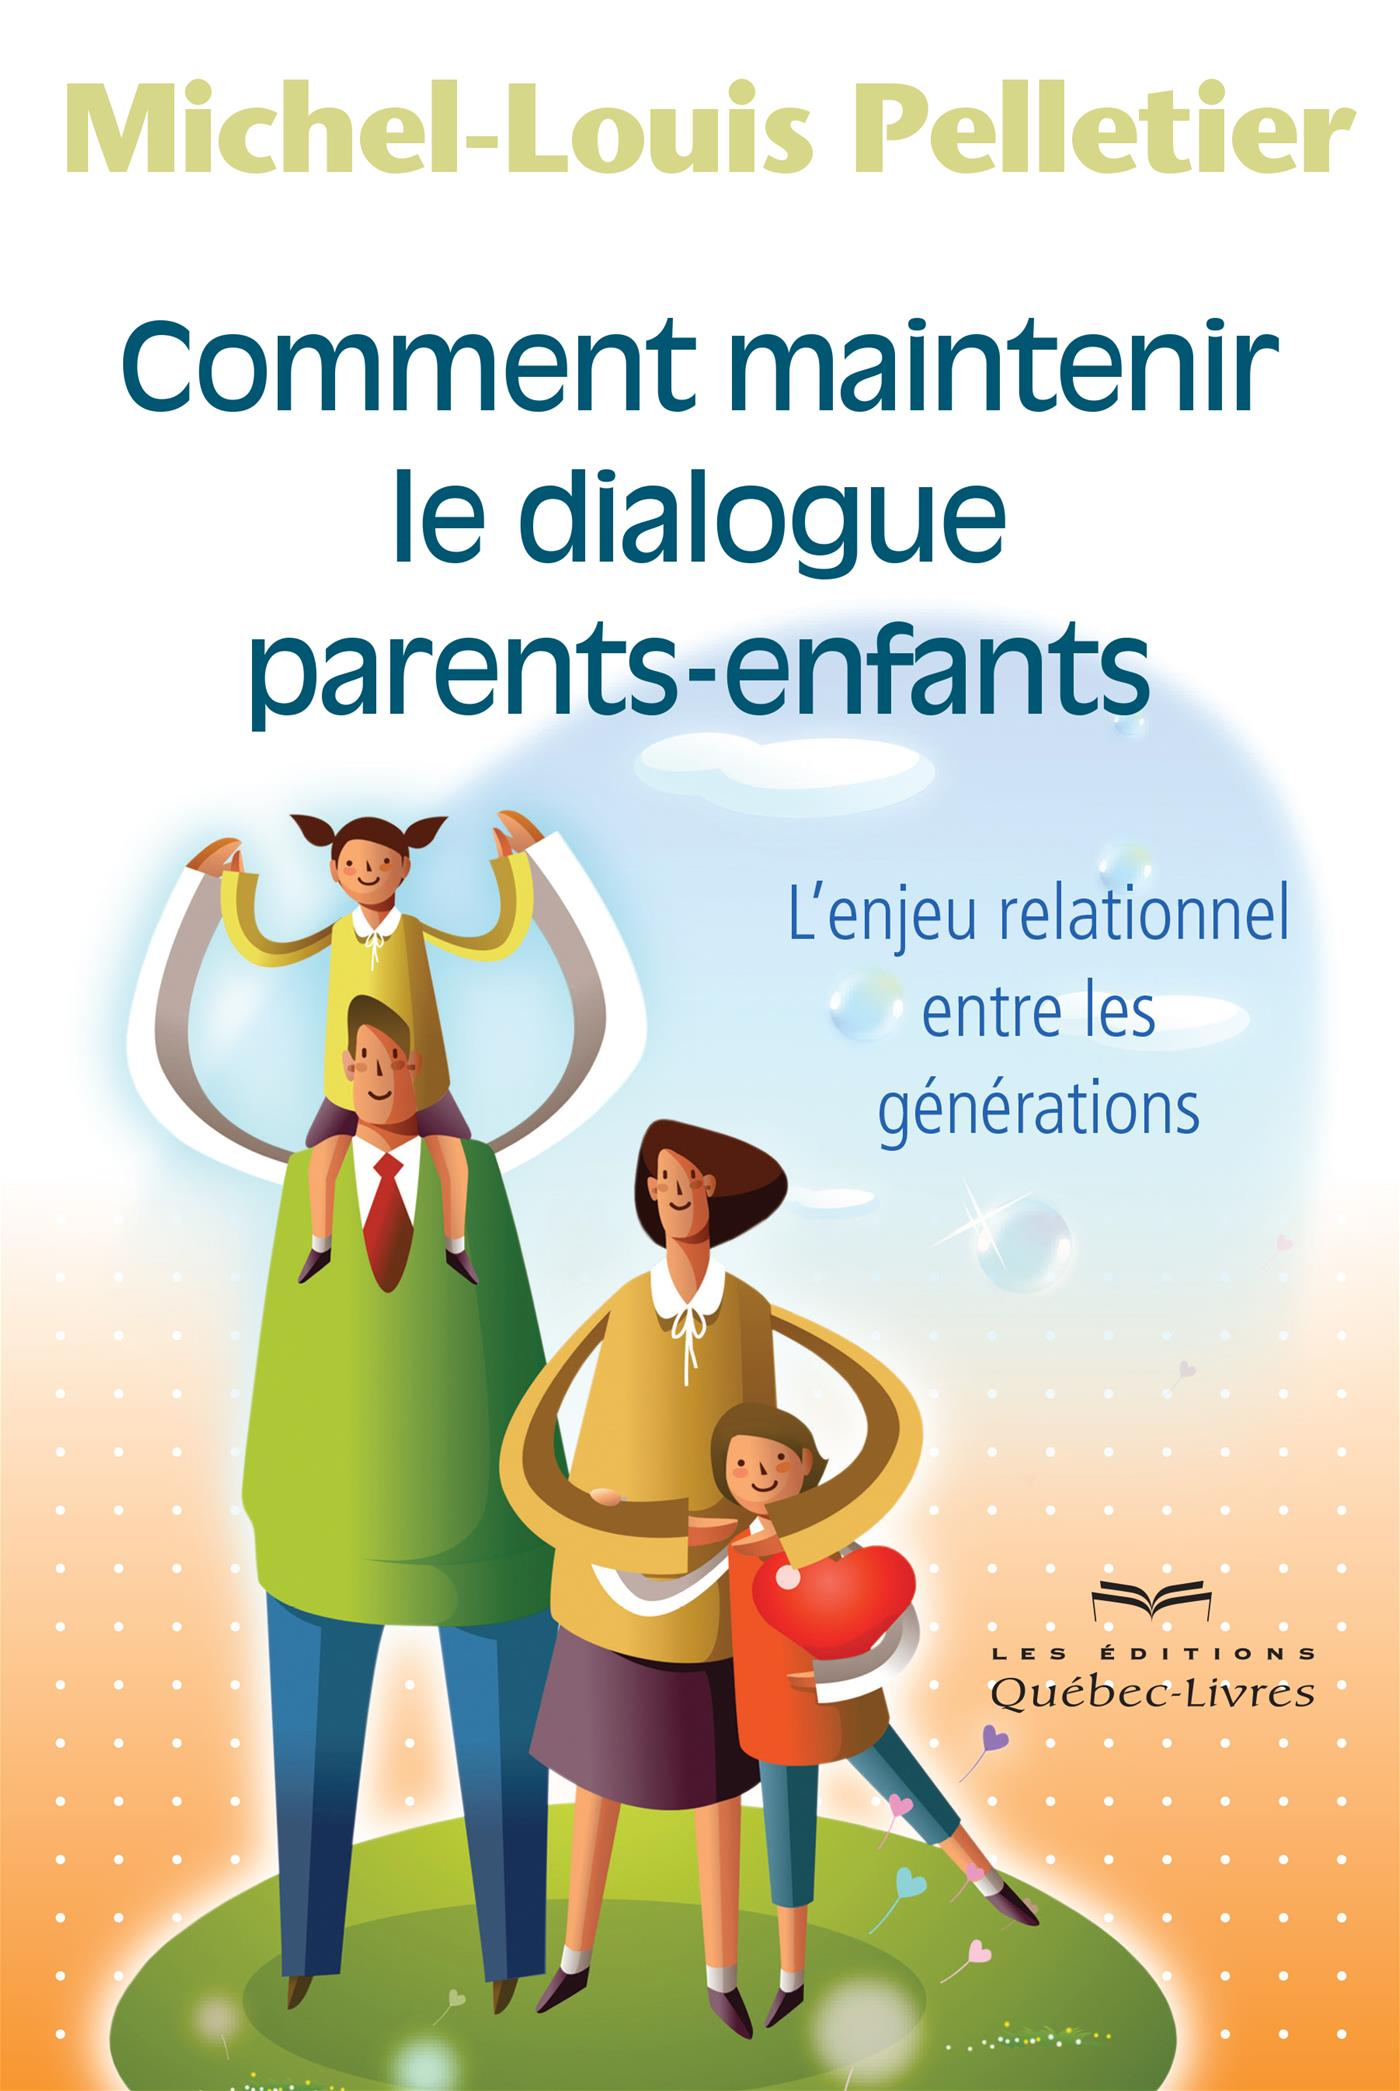 Comment maintenir le dialogue parents-enfants